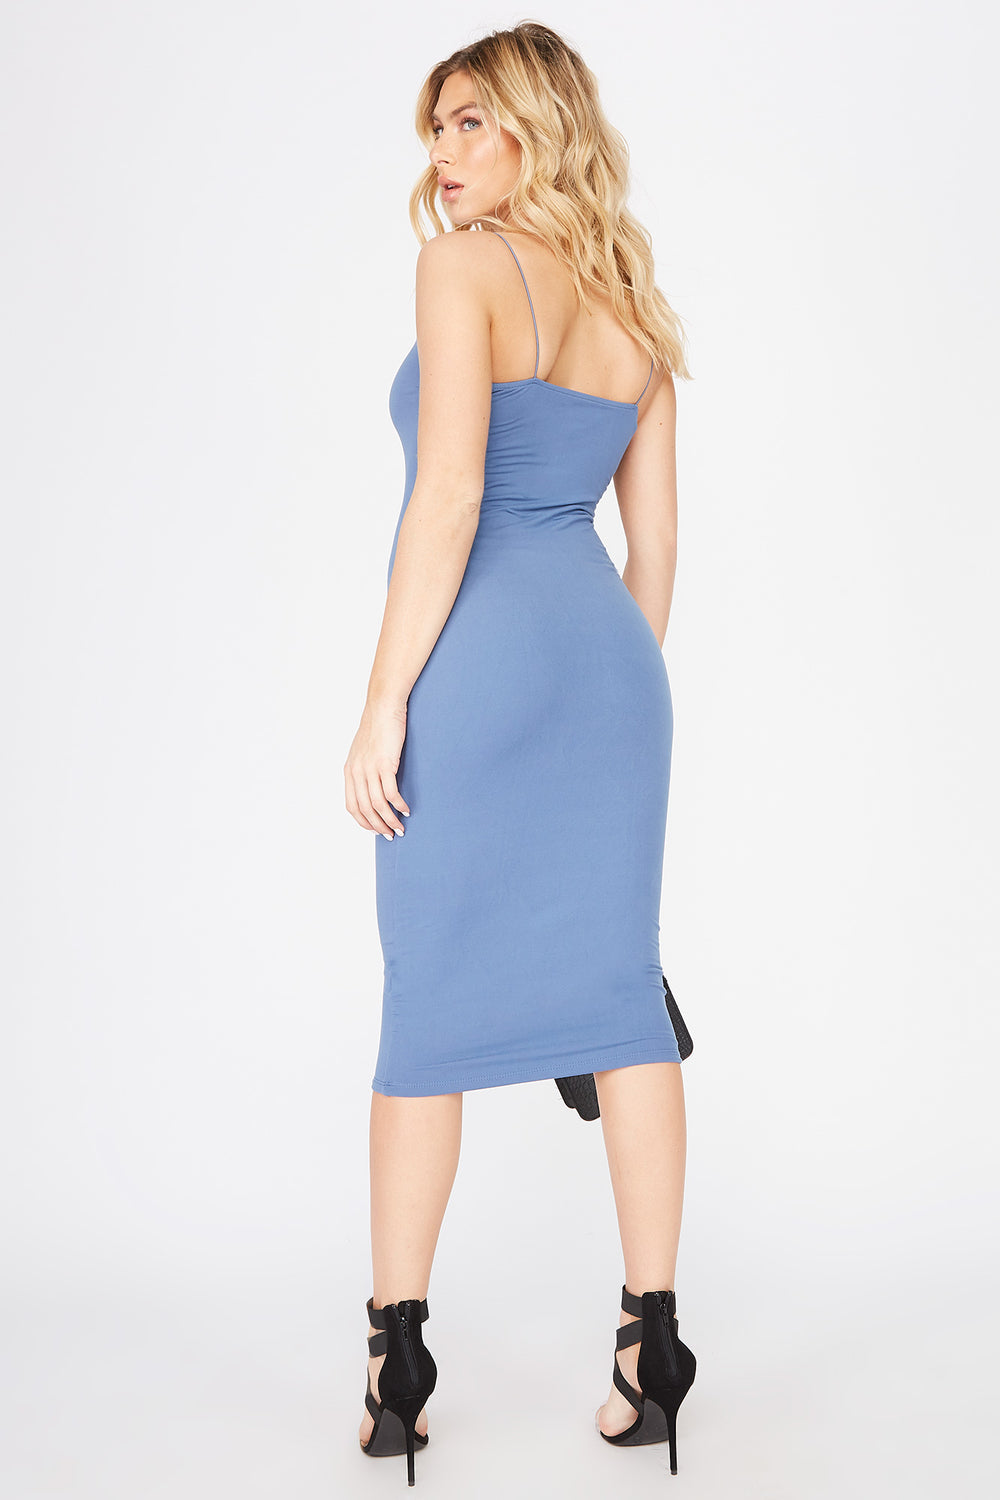 Sleeveless Bodycon Midi Dress Grey Blue